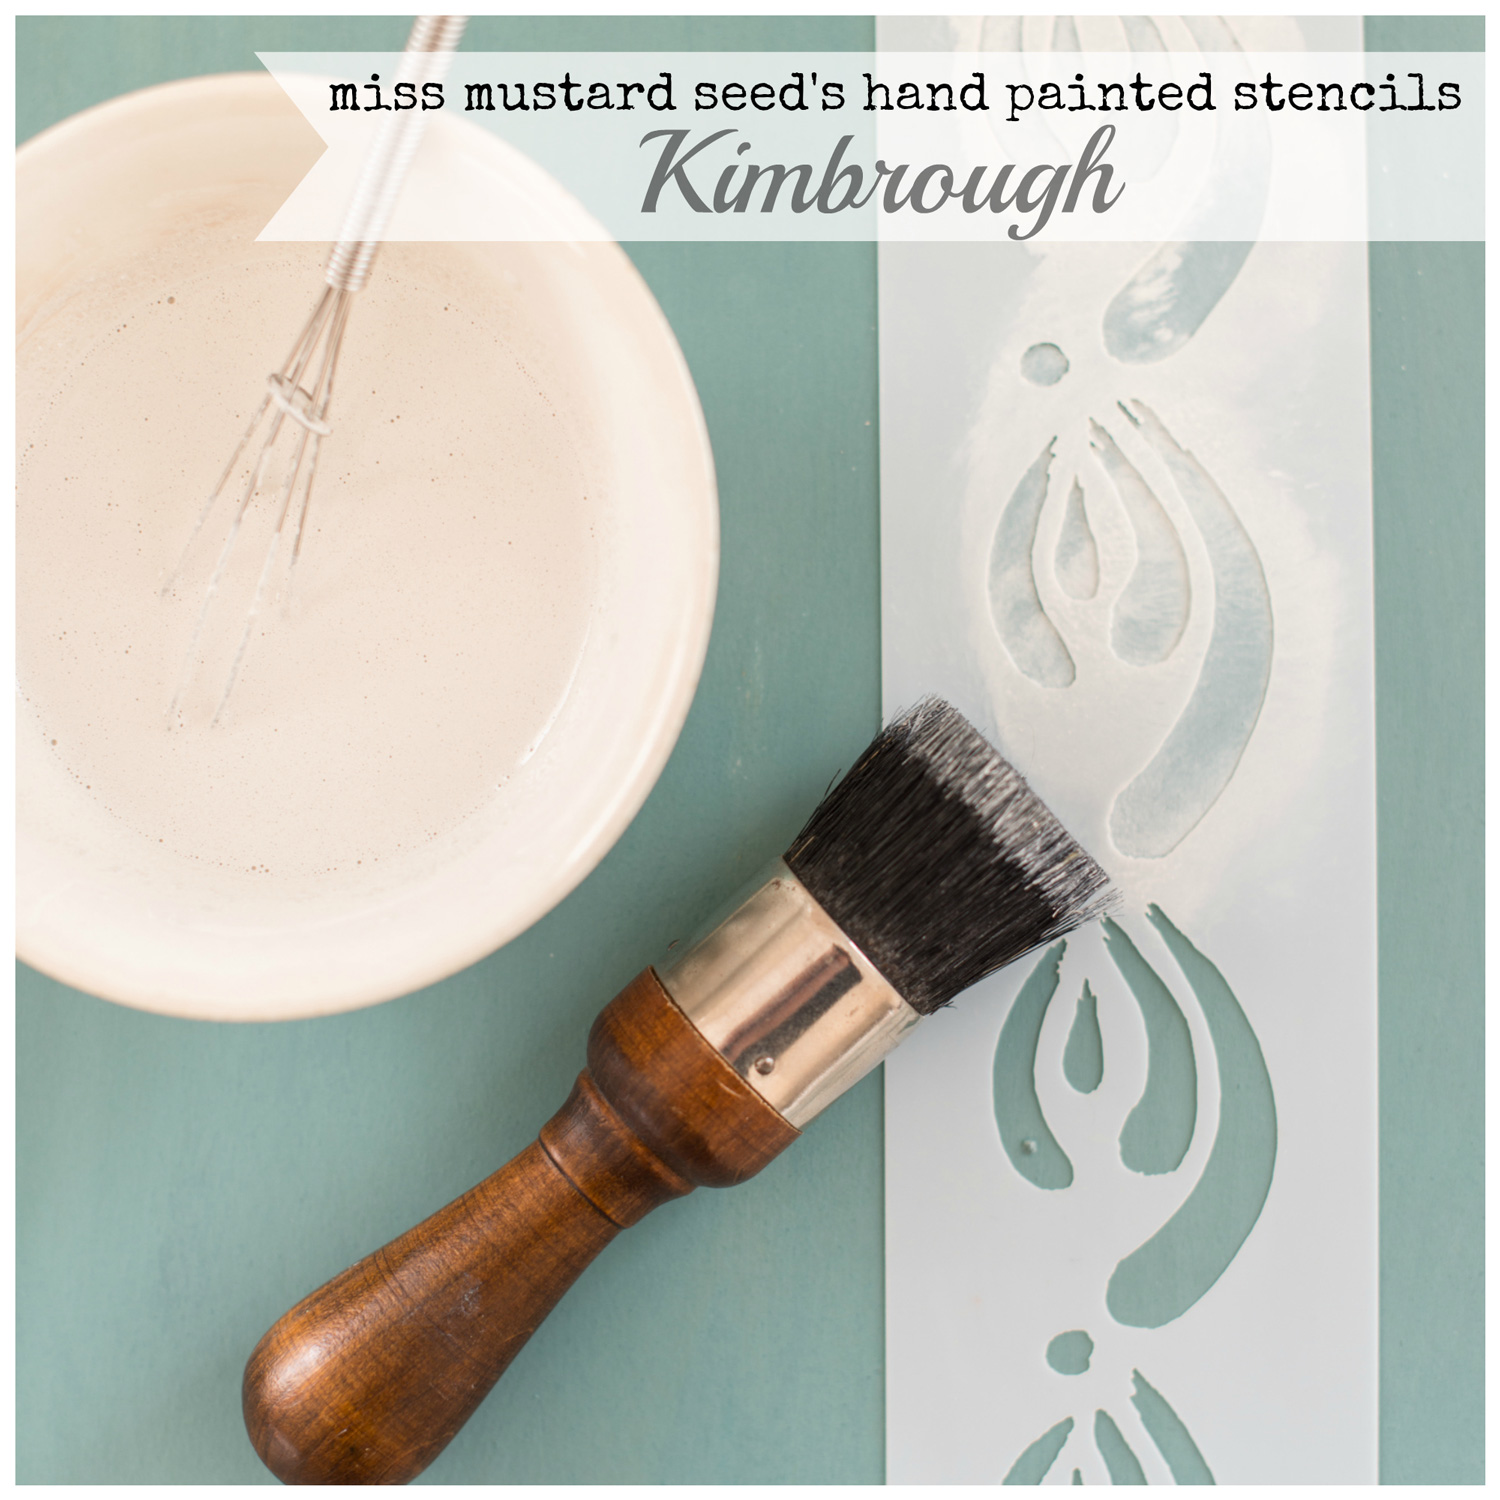 Miss Mustard Seed's hand painted stencils are available at My Painted Door. This stencil is the Kimbrough design.